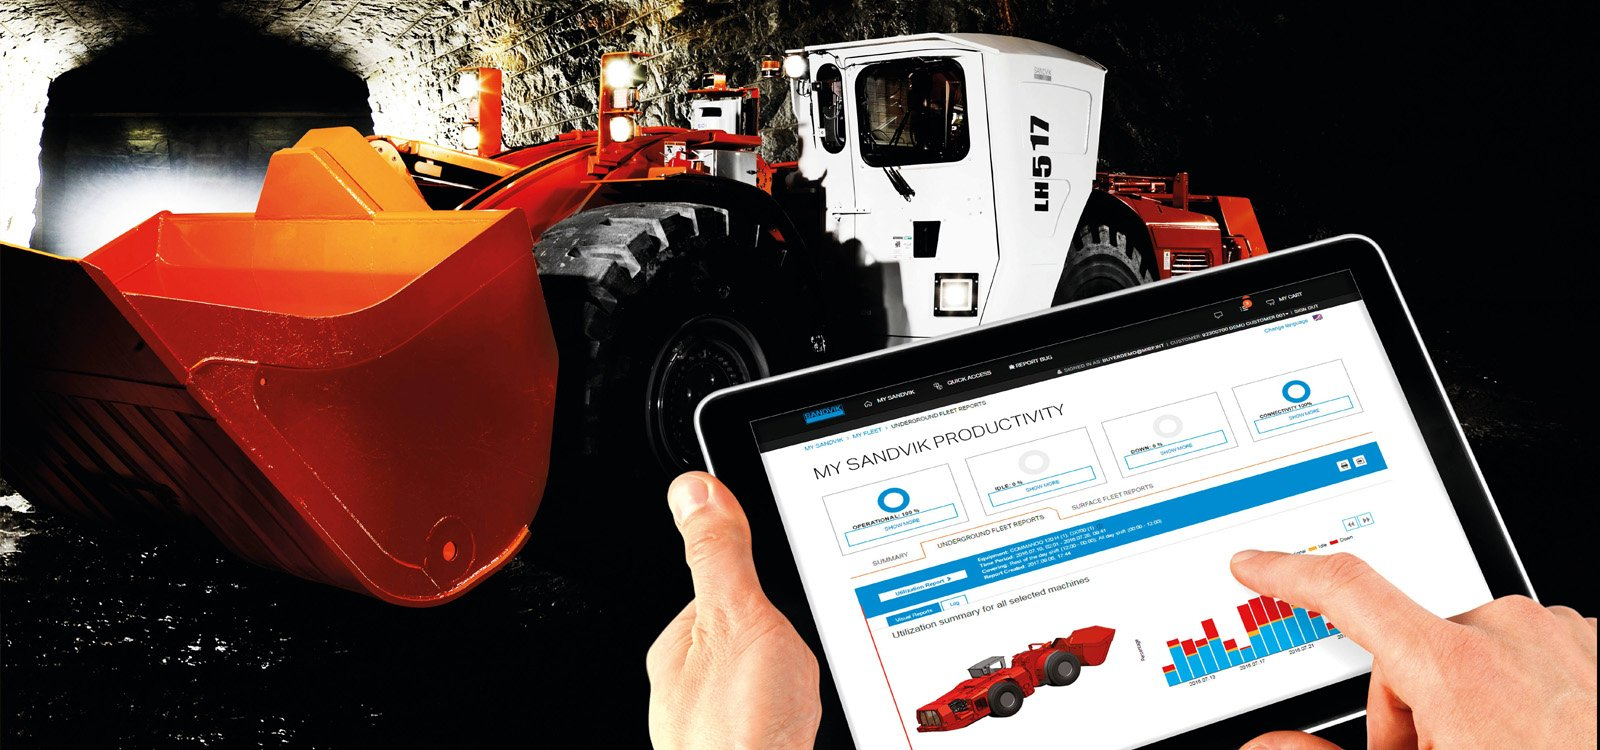 <p>Sandvik has introduced the My Sandvik digital service solutions to help with productivity and provide useful insights into making operations more efficient.</p>